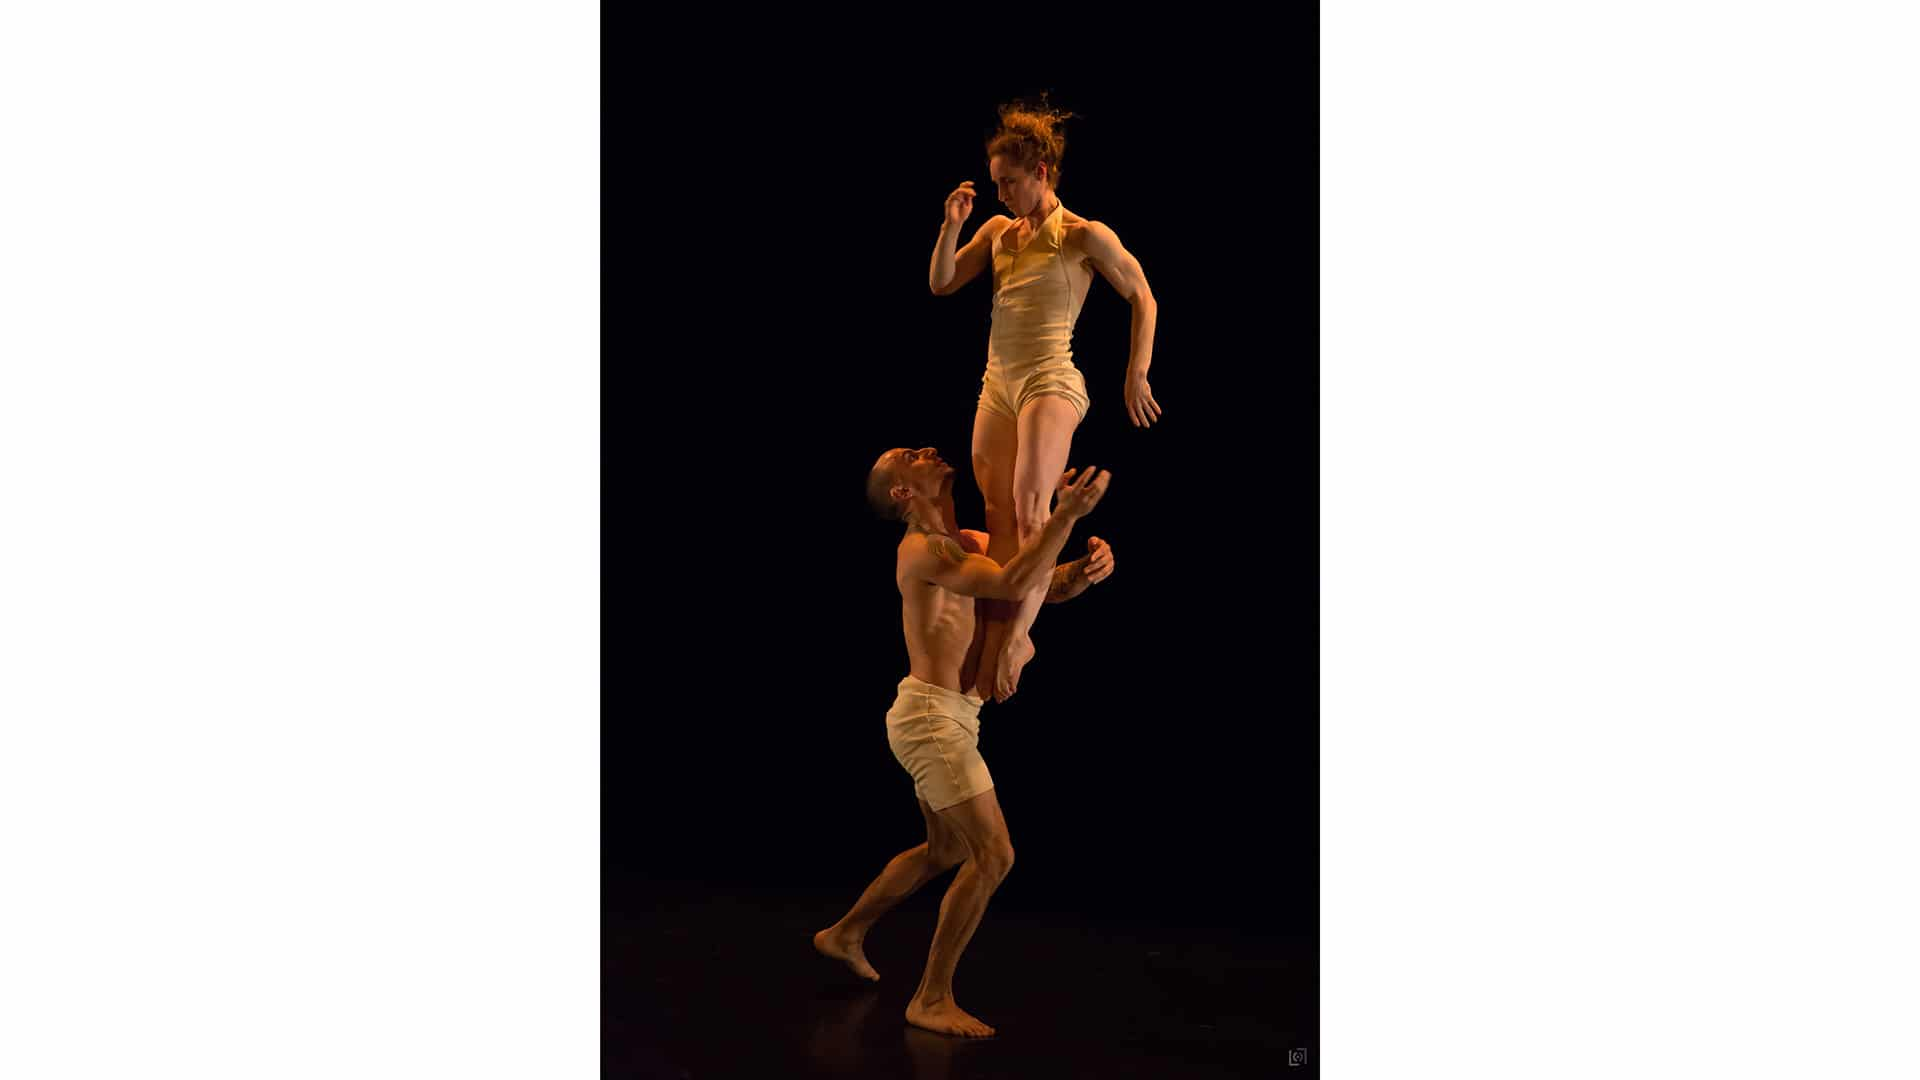 Nikki Rummer is in mid air, her legs pointed straight beneath her, while JD Broussé stands, his arms encircled around her legs, ready to catch her